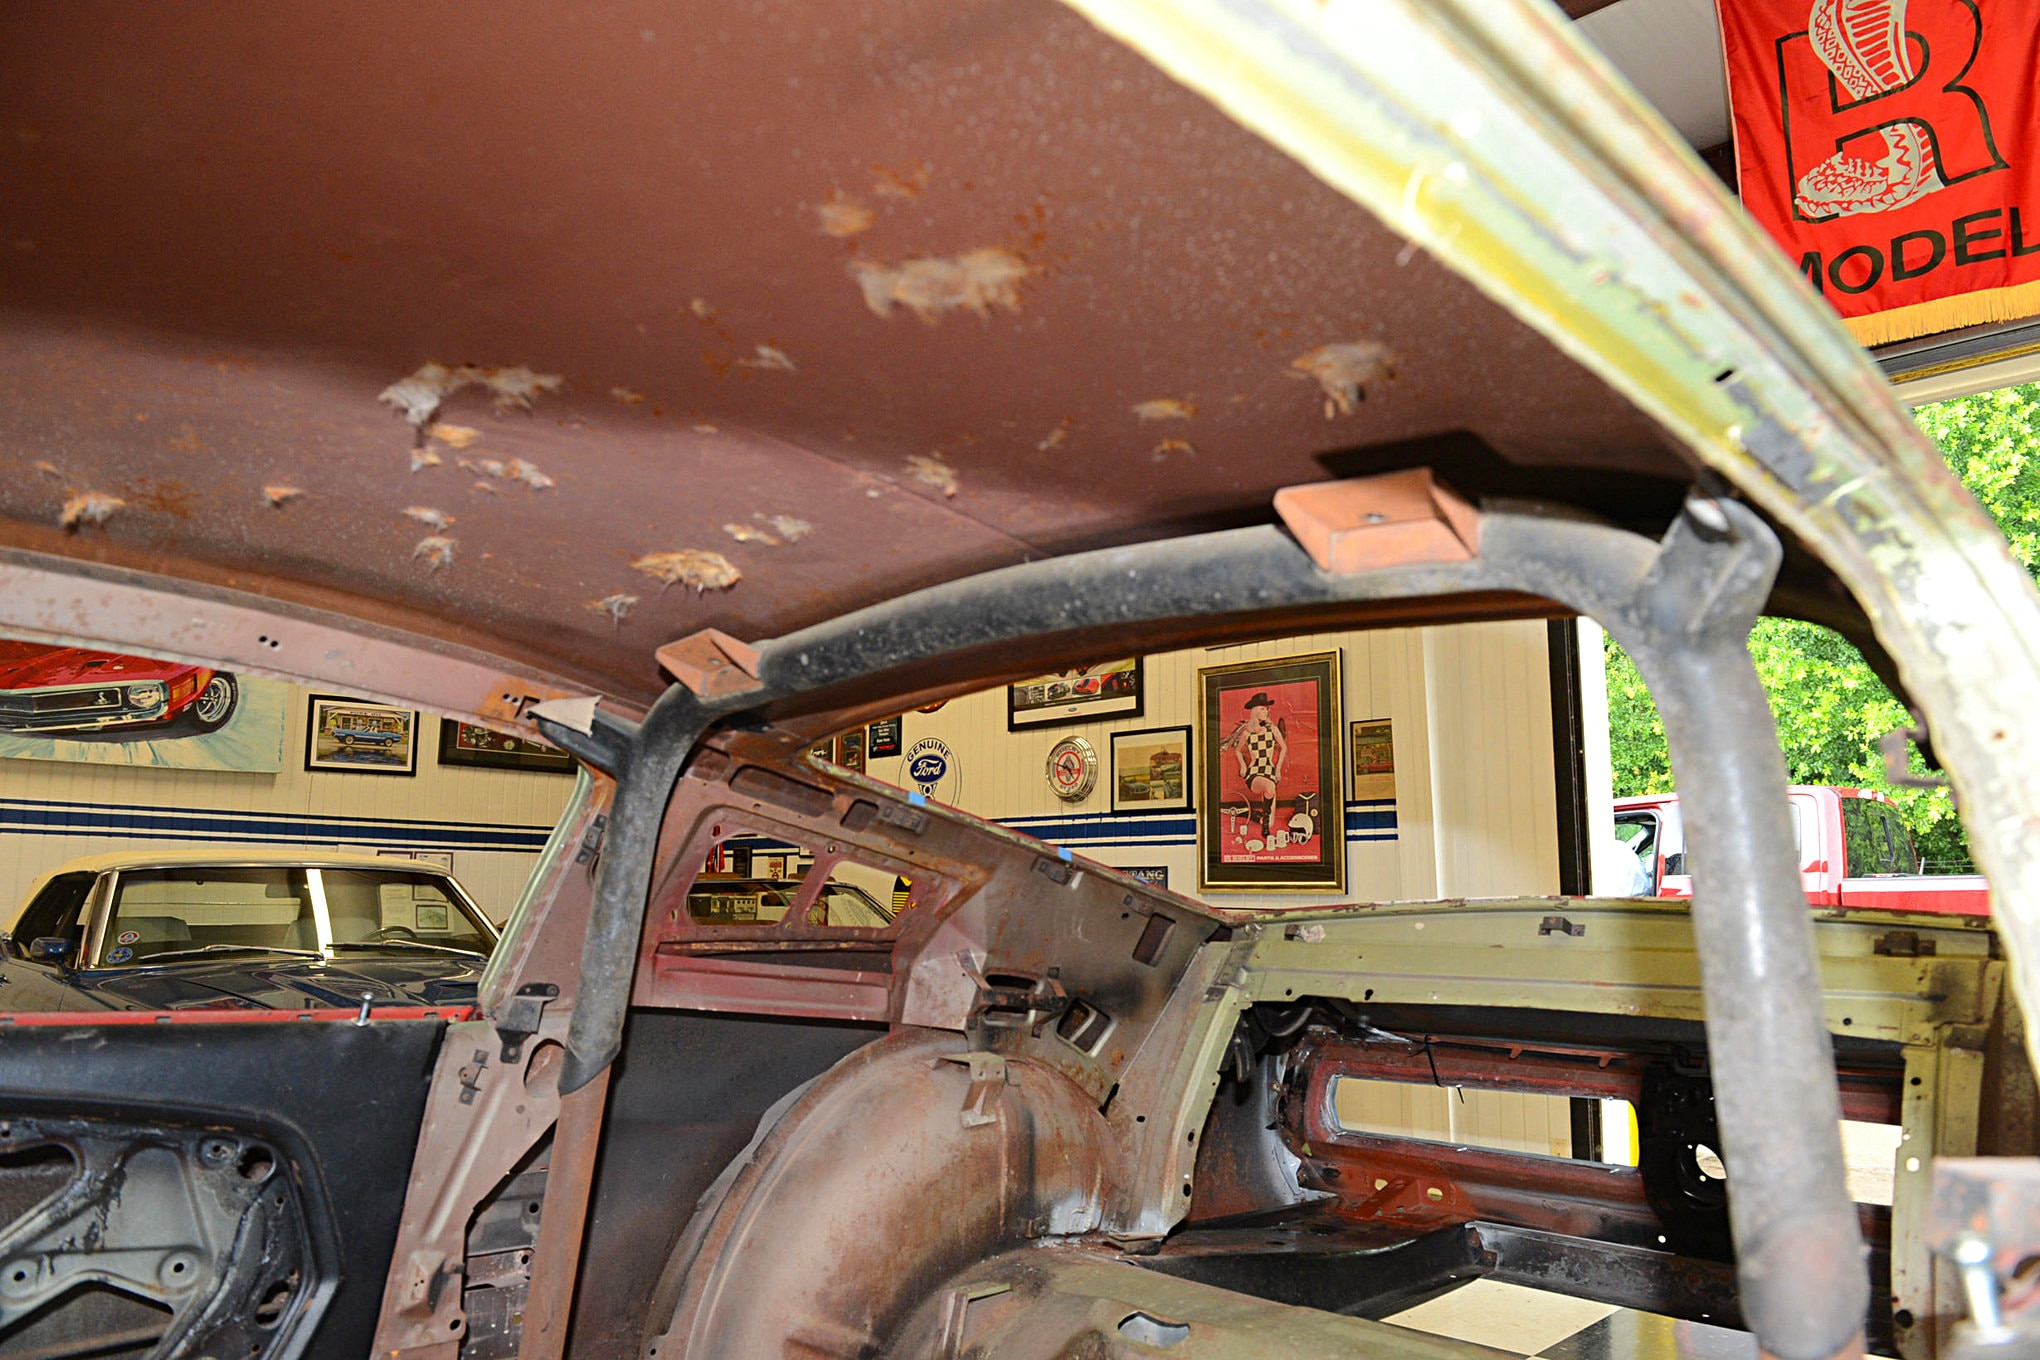 1967 Gt350 Mustang Rare Find 045